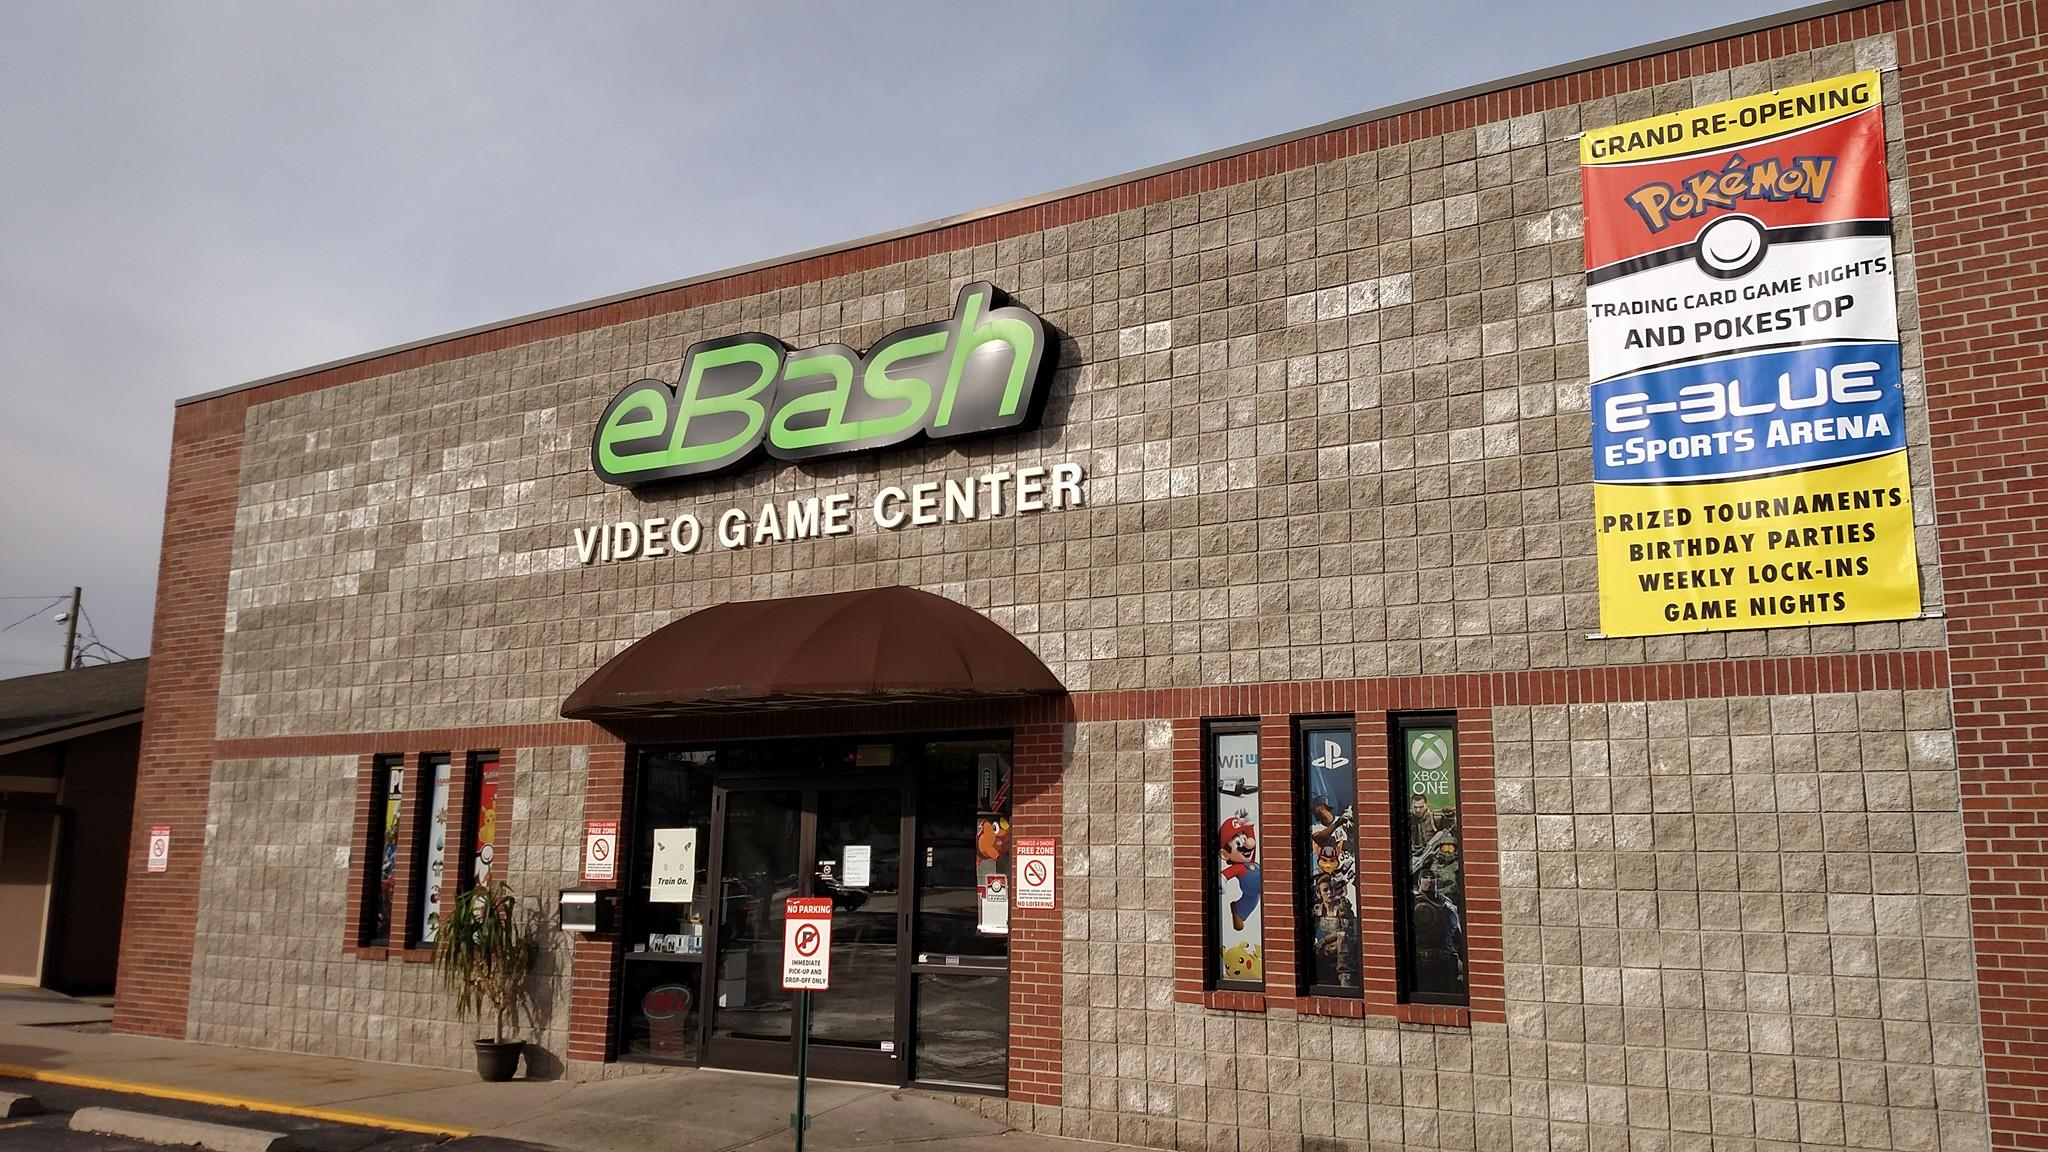 Our first venue eBash game center in Terre Haute, IN started in 2004.